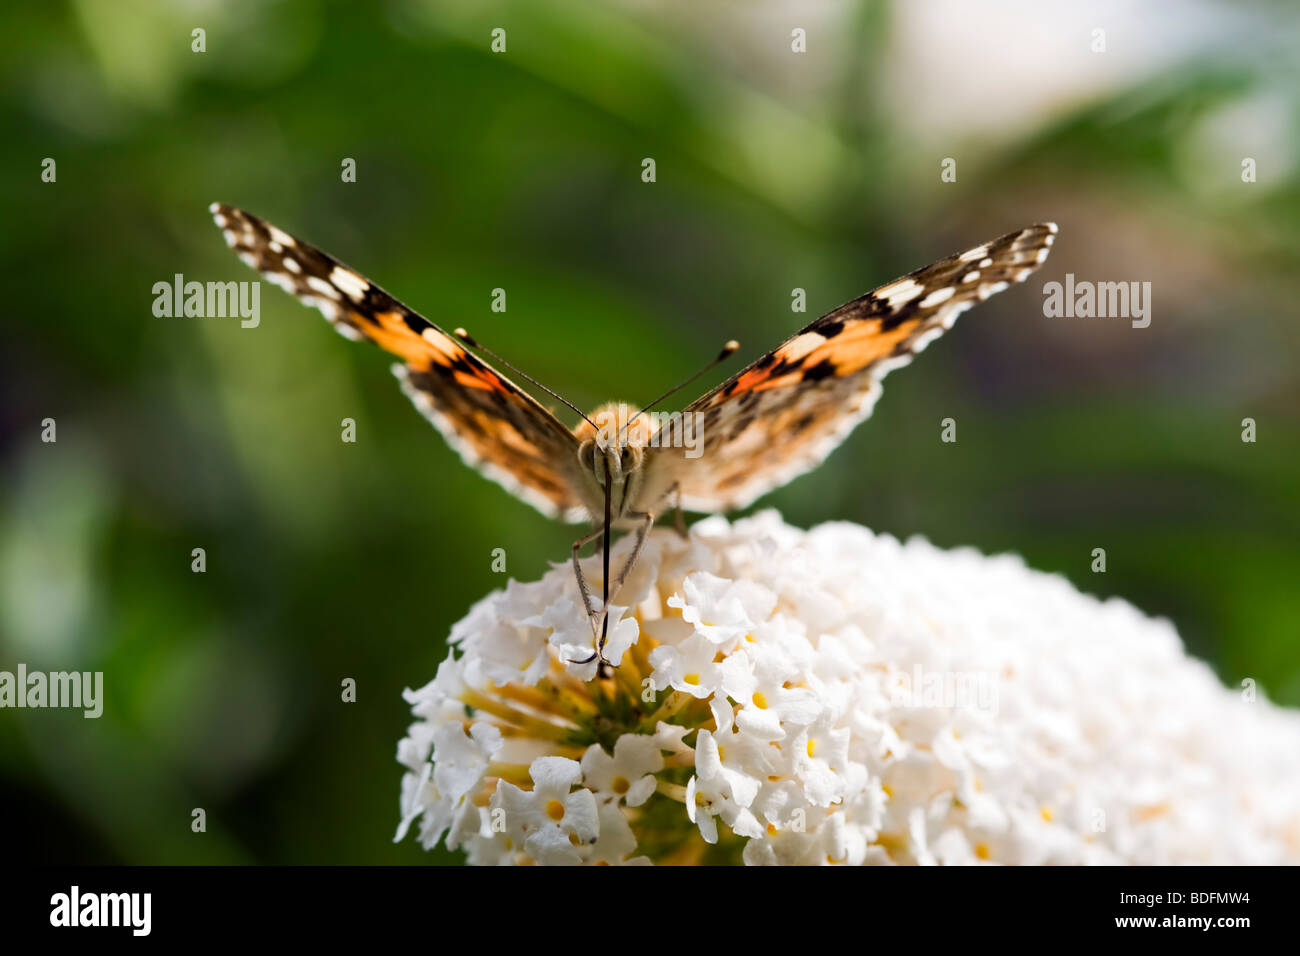 Pianted Lady butterfly sucking nectar from flower close-up, frontal view - Stock Image